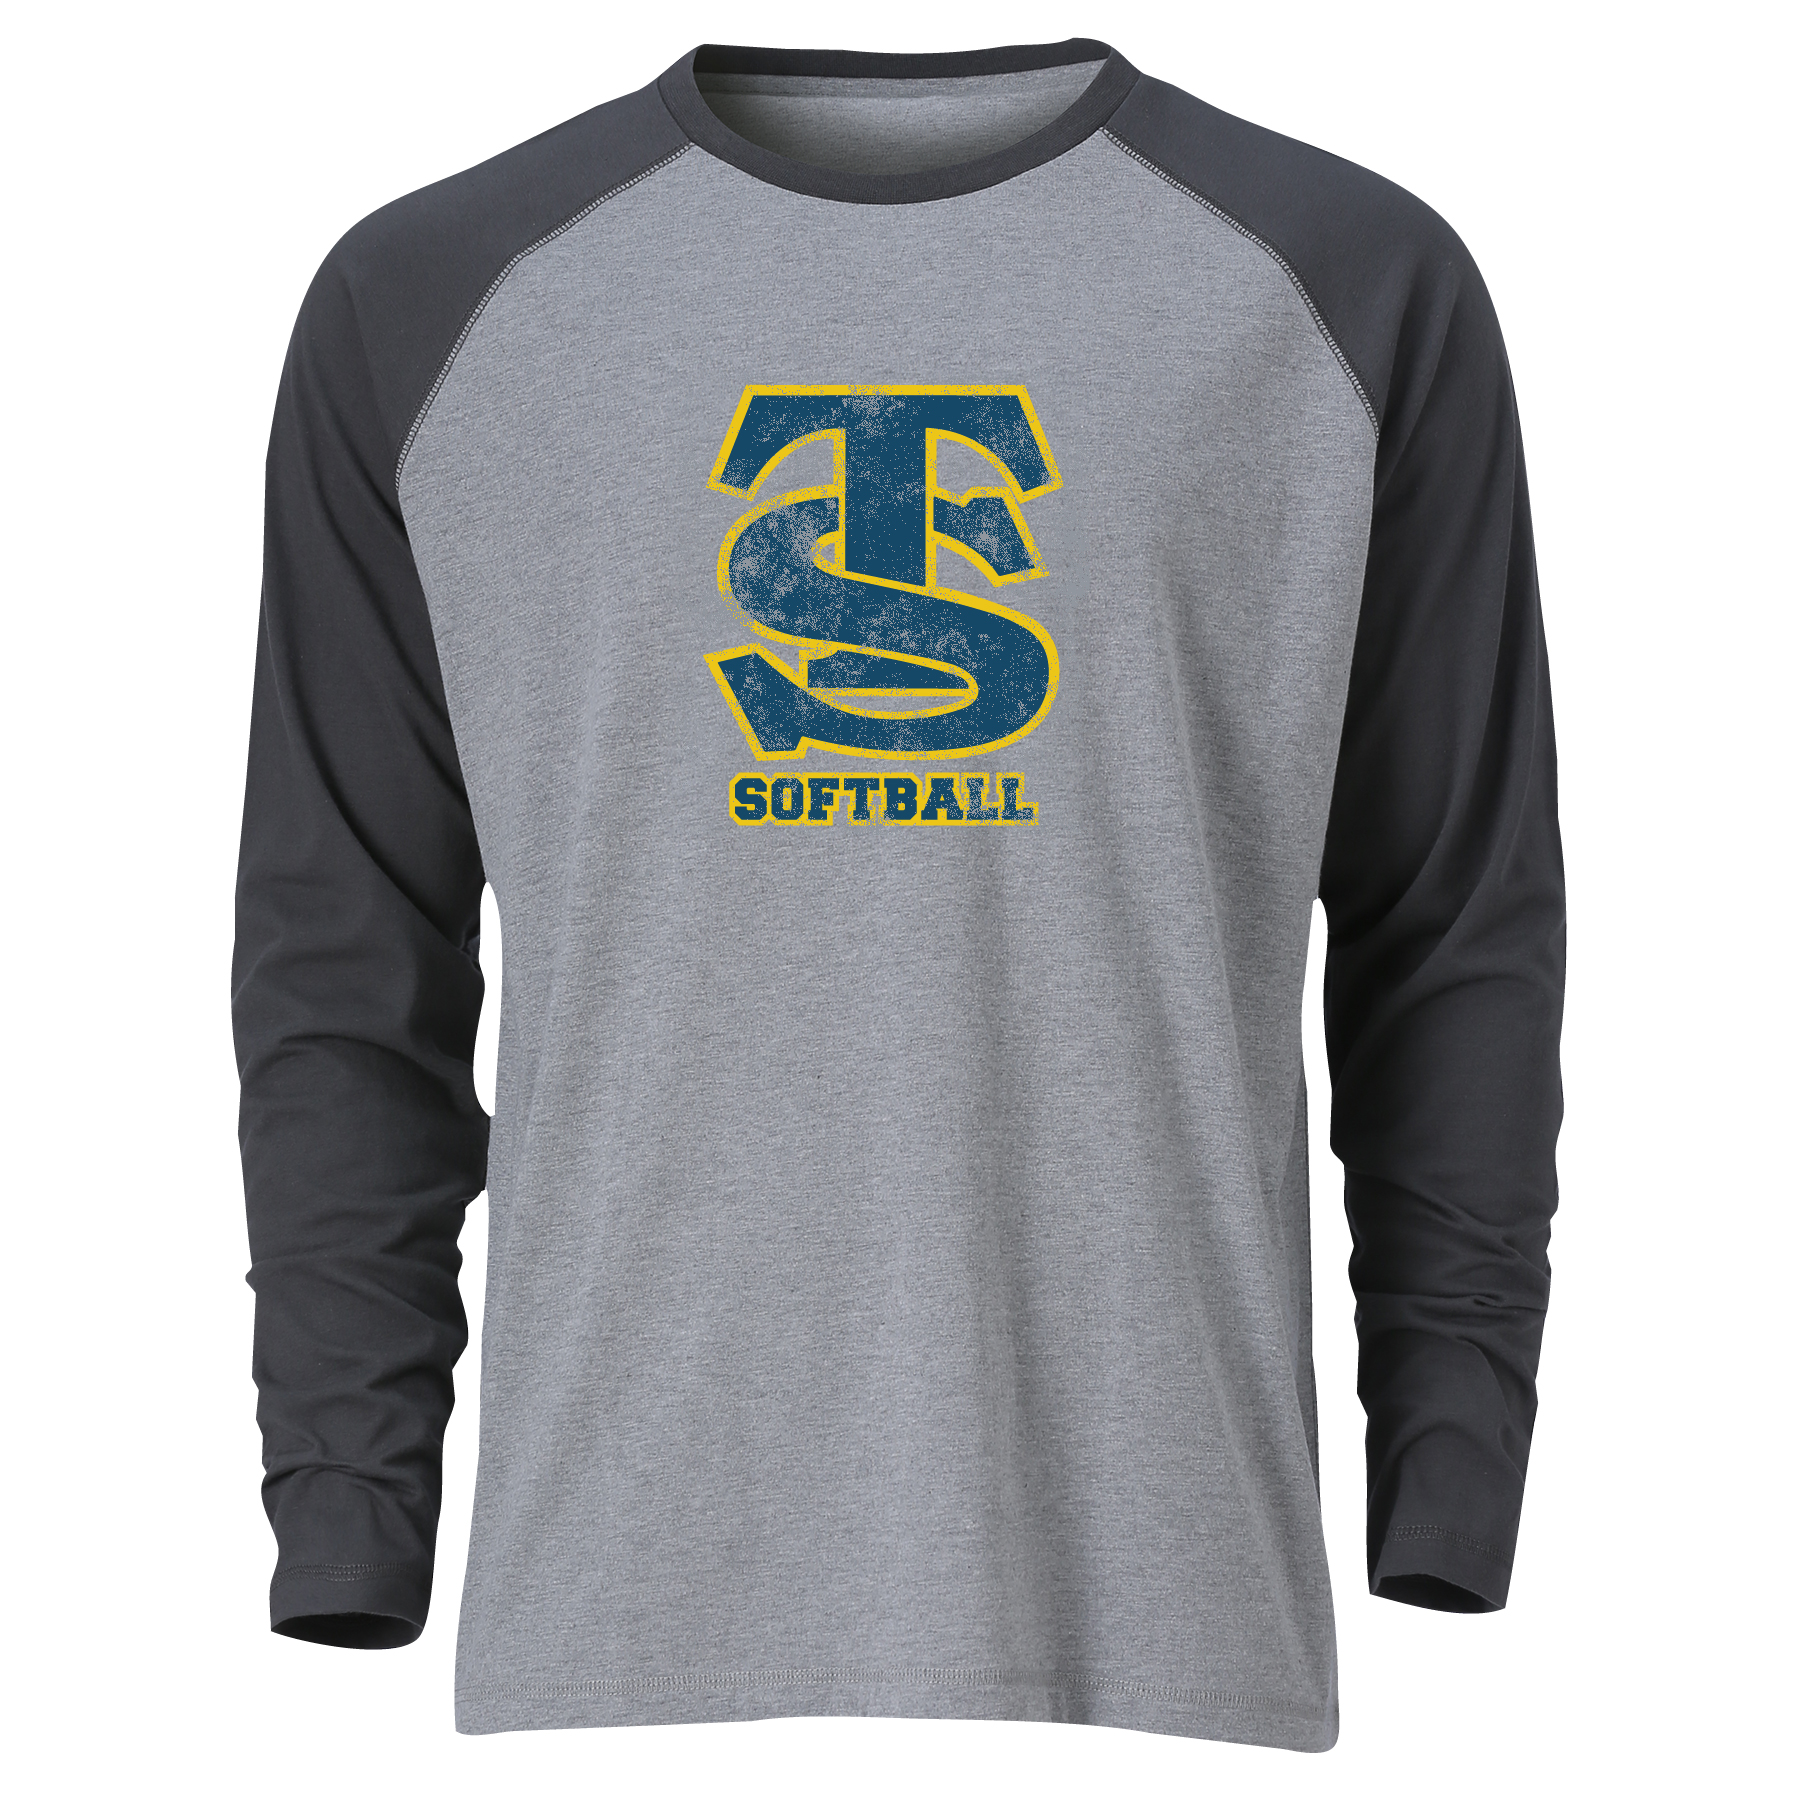 TS Softball Long sleeve T-shirt